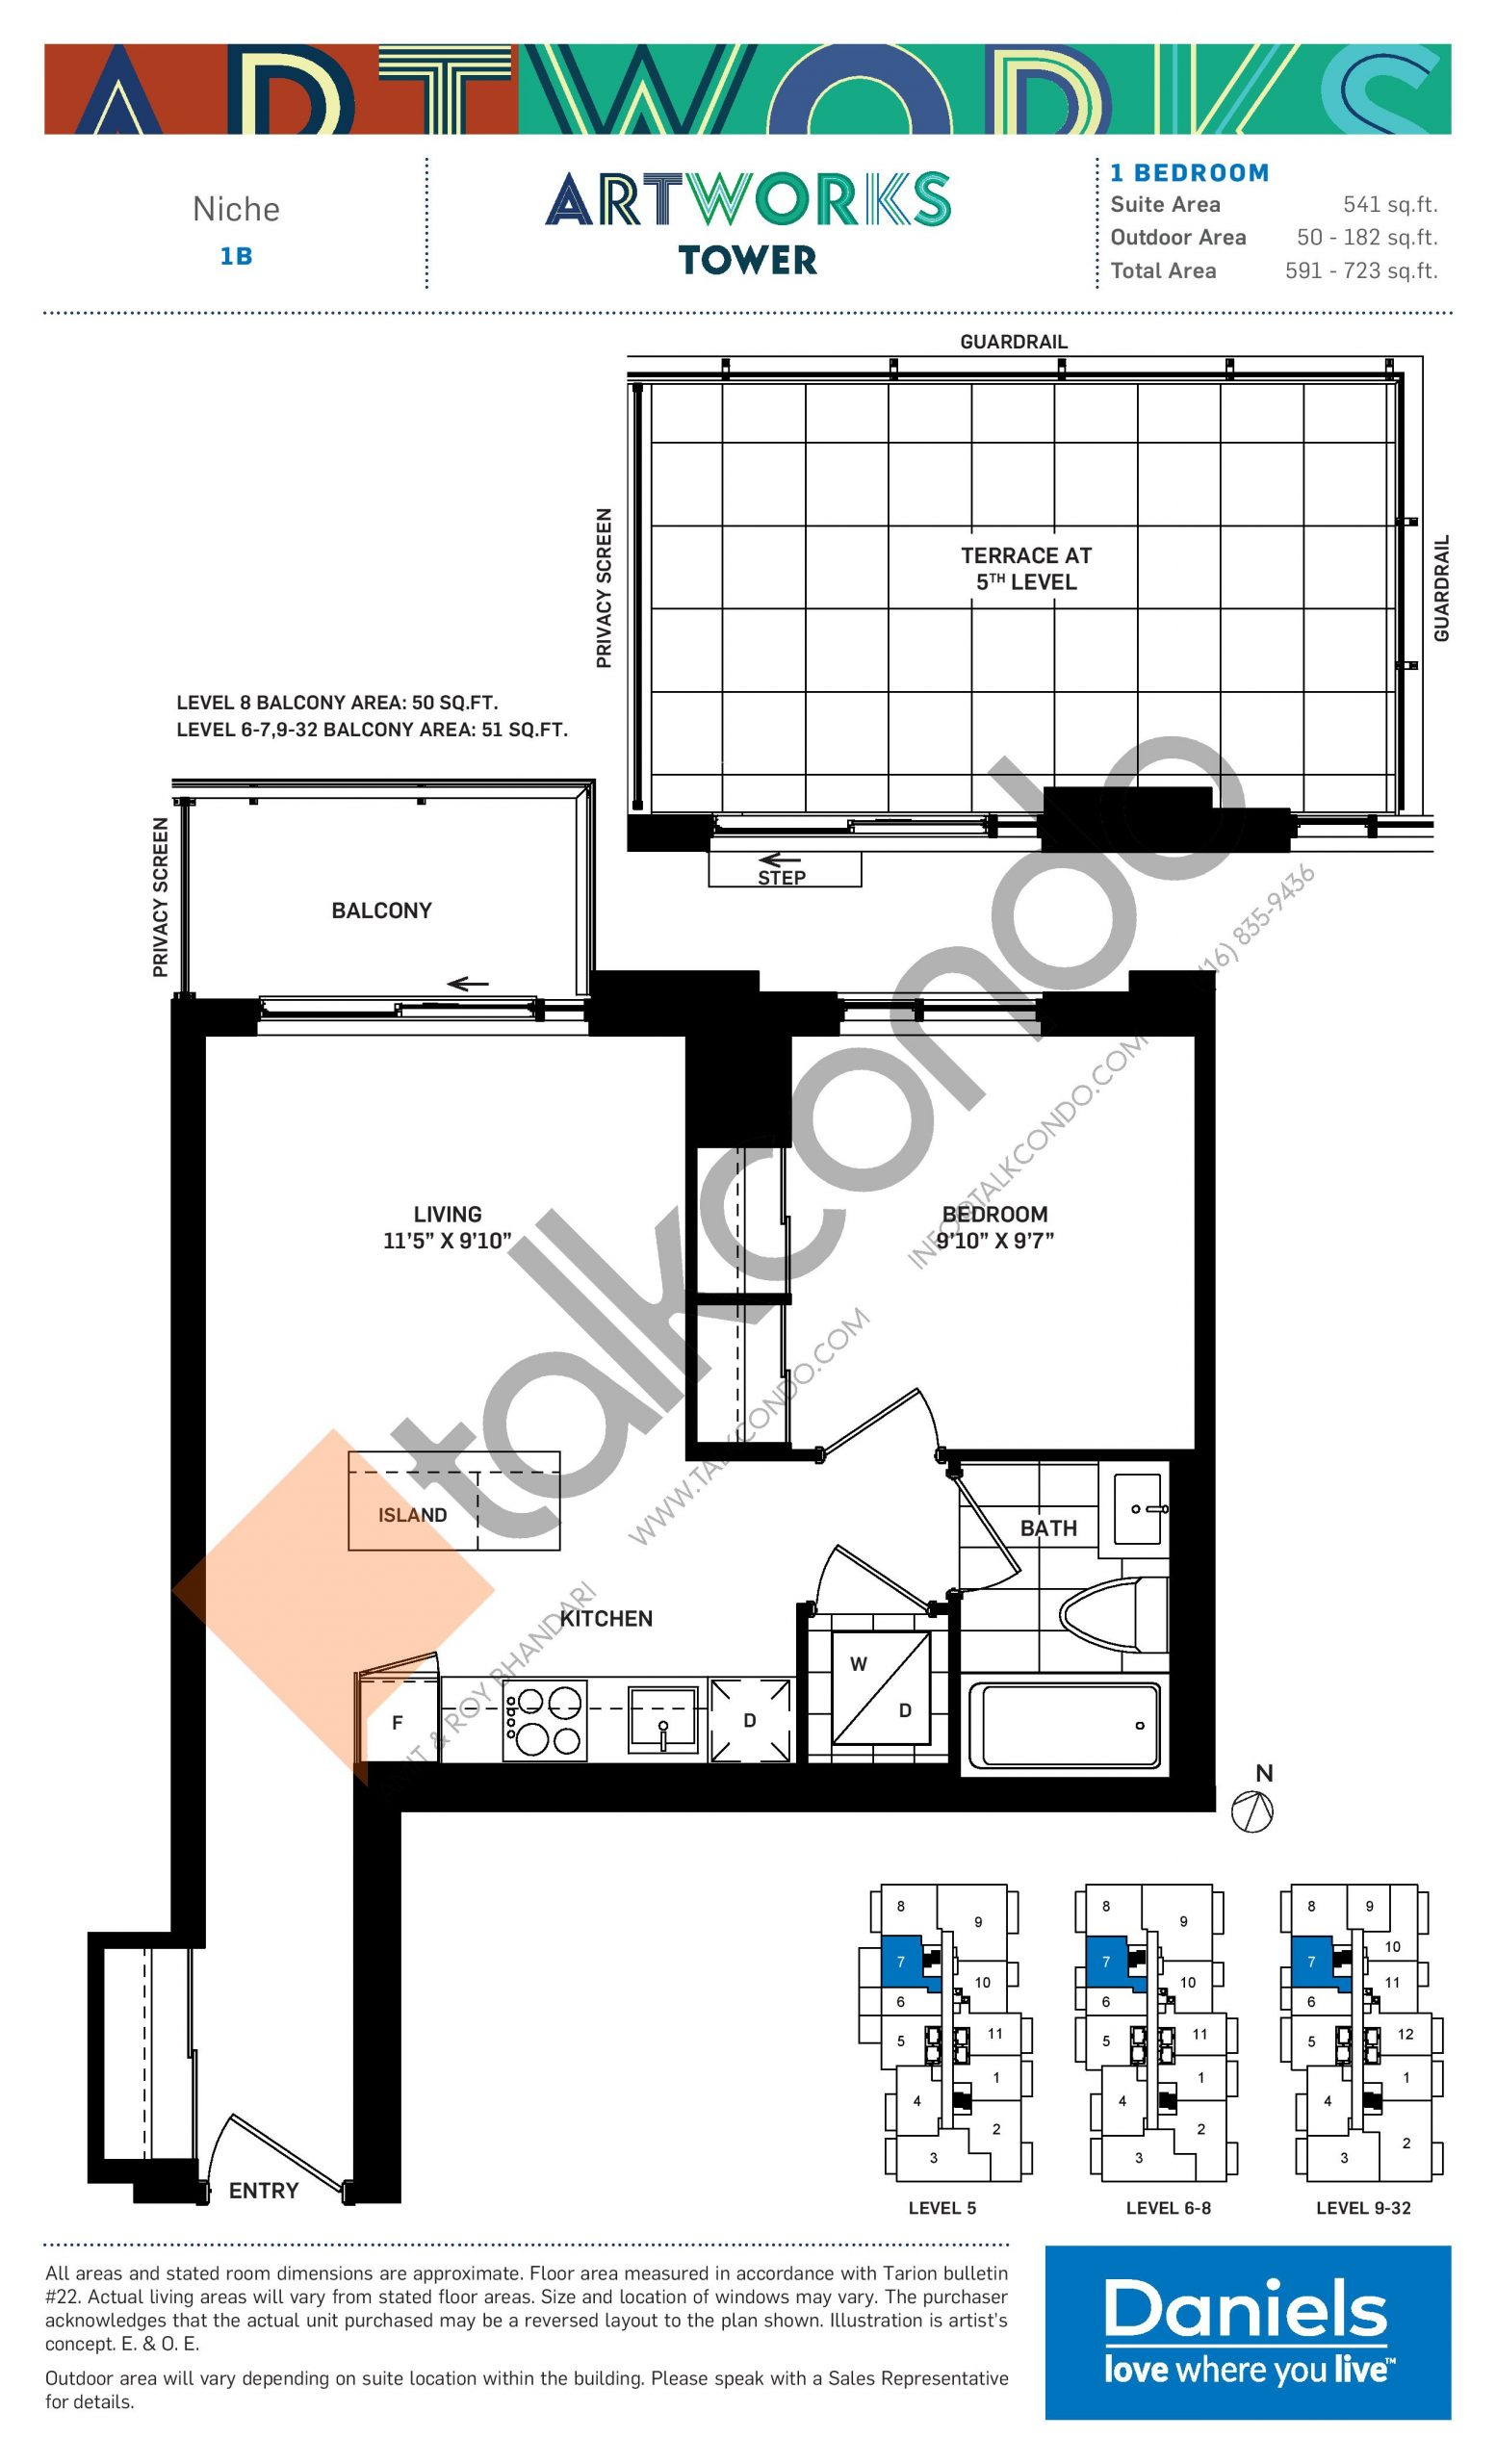 Niche Floor Plan at Artworks Tower Condos - 541 sq.ft